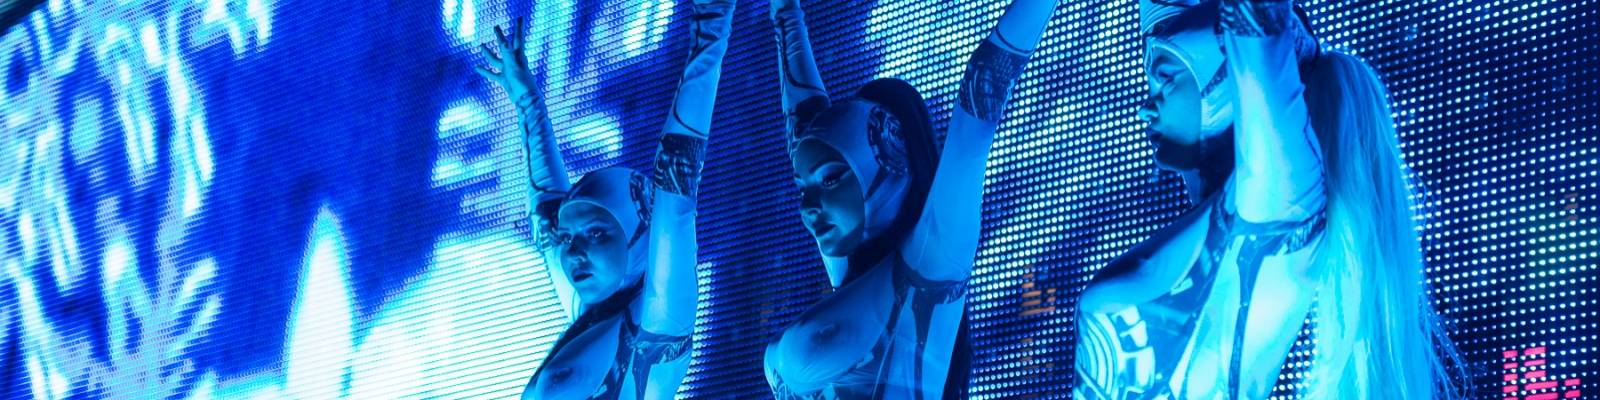 Photos: Week 4 ASOT Ushuaia Ibiza